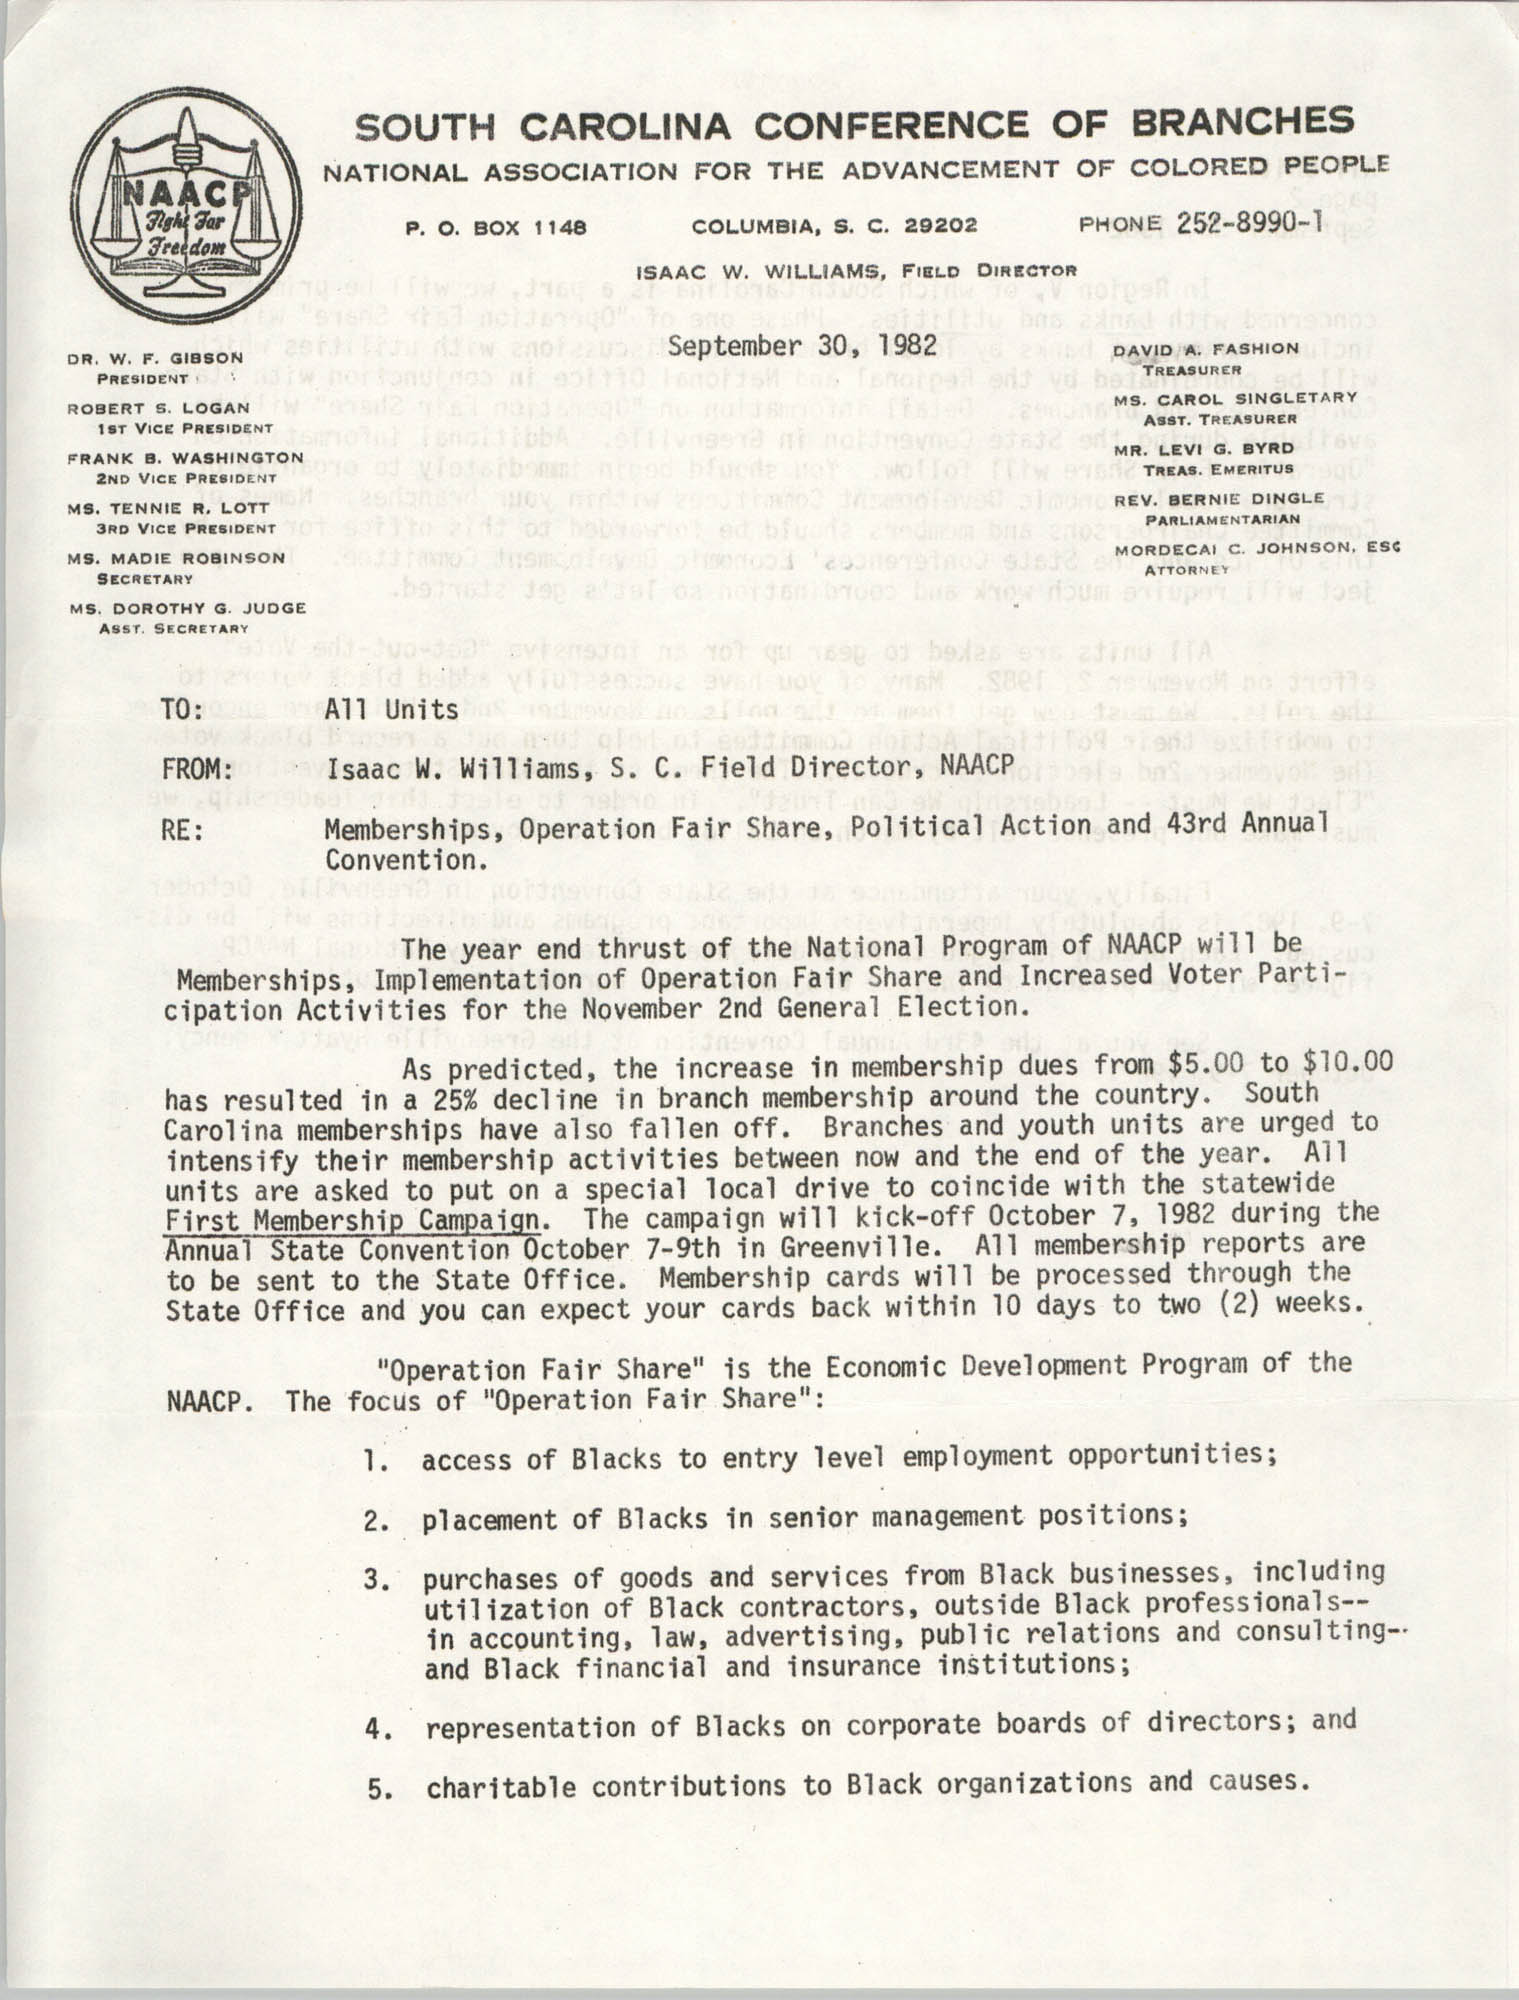 South Carolina Conference of Branches of the NAACP Memorandum, September 30, 1982